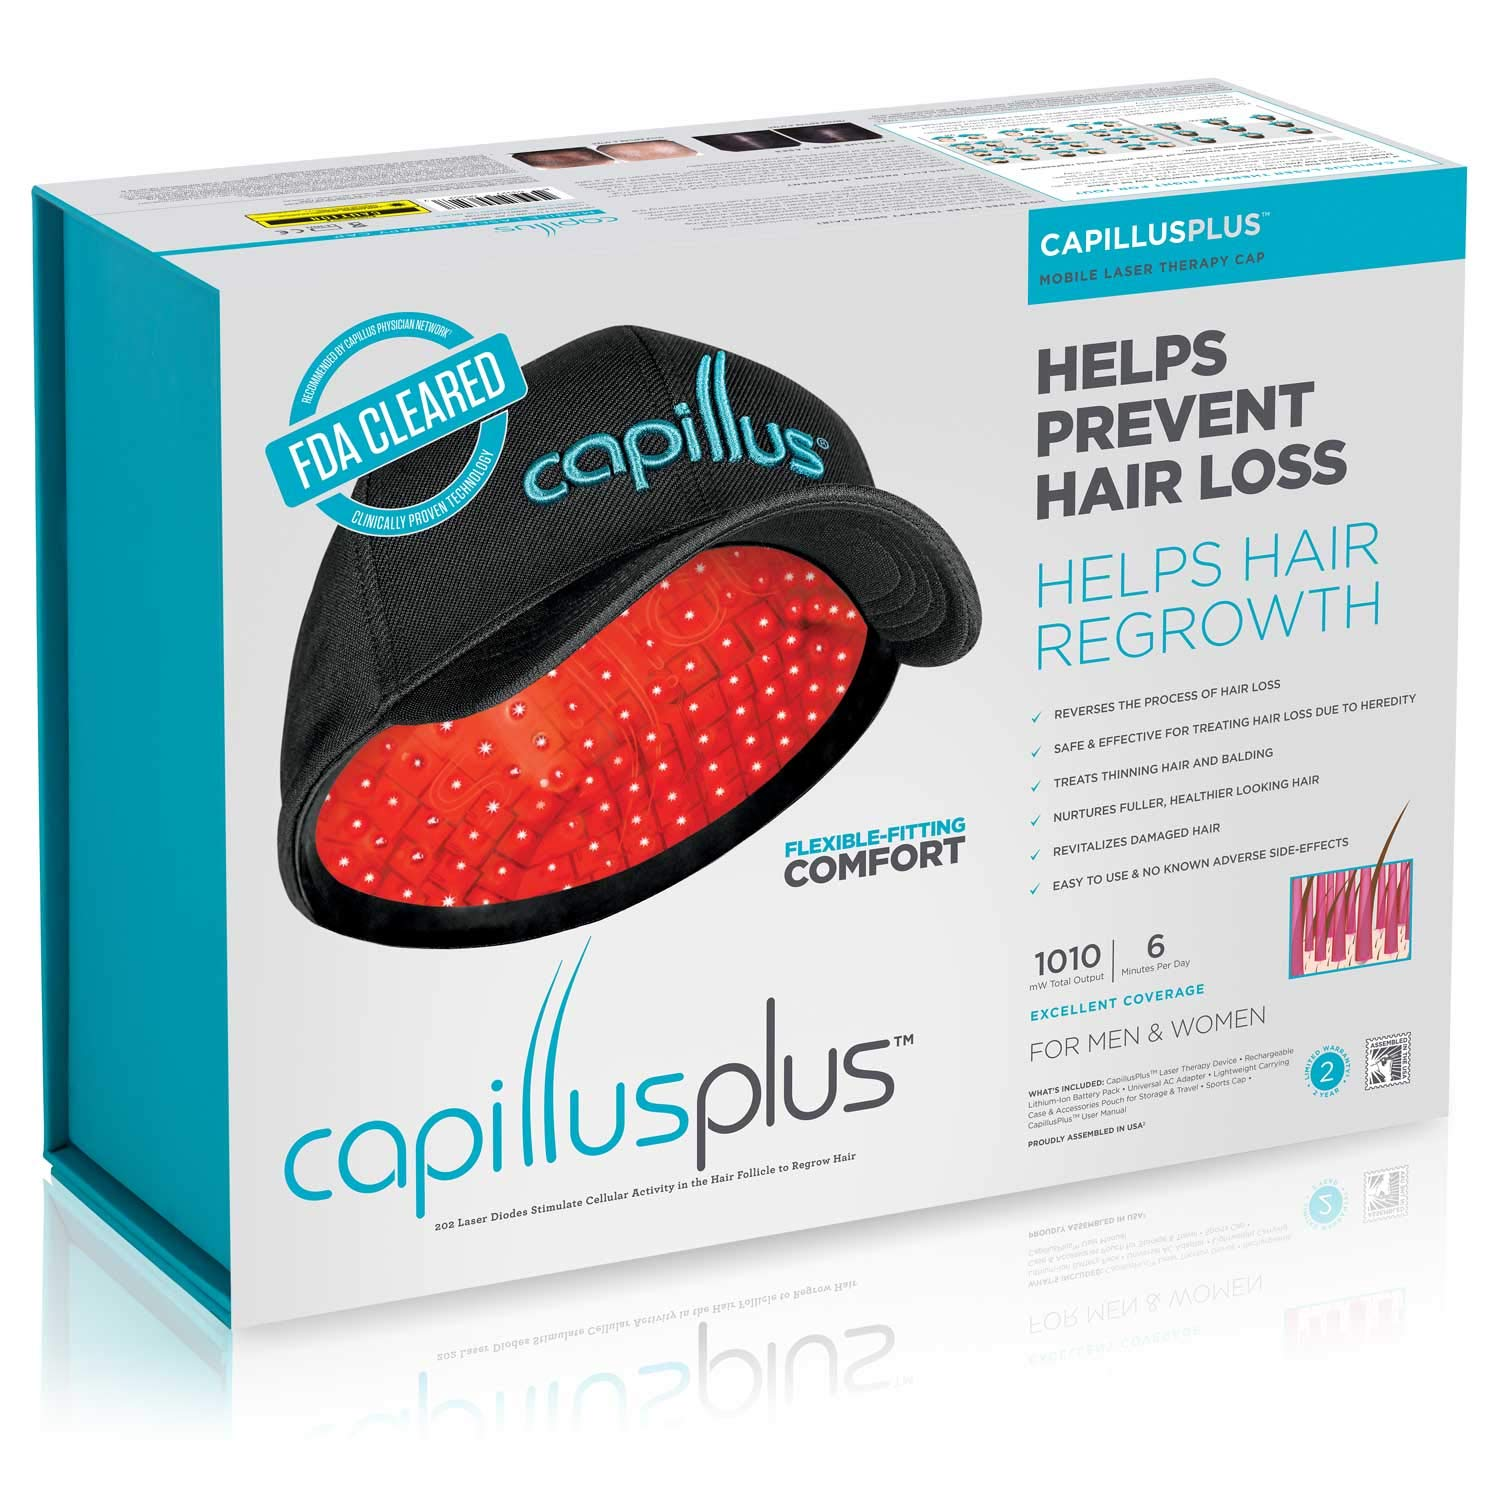 CapillusPlus Mobile Laser Therapy Cap for Hair Regrowth